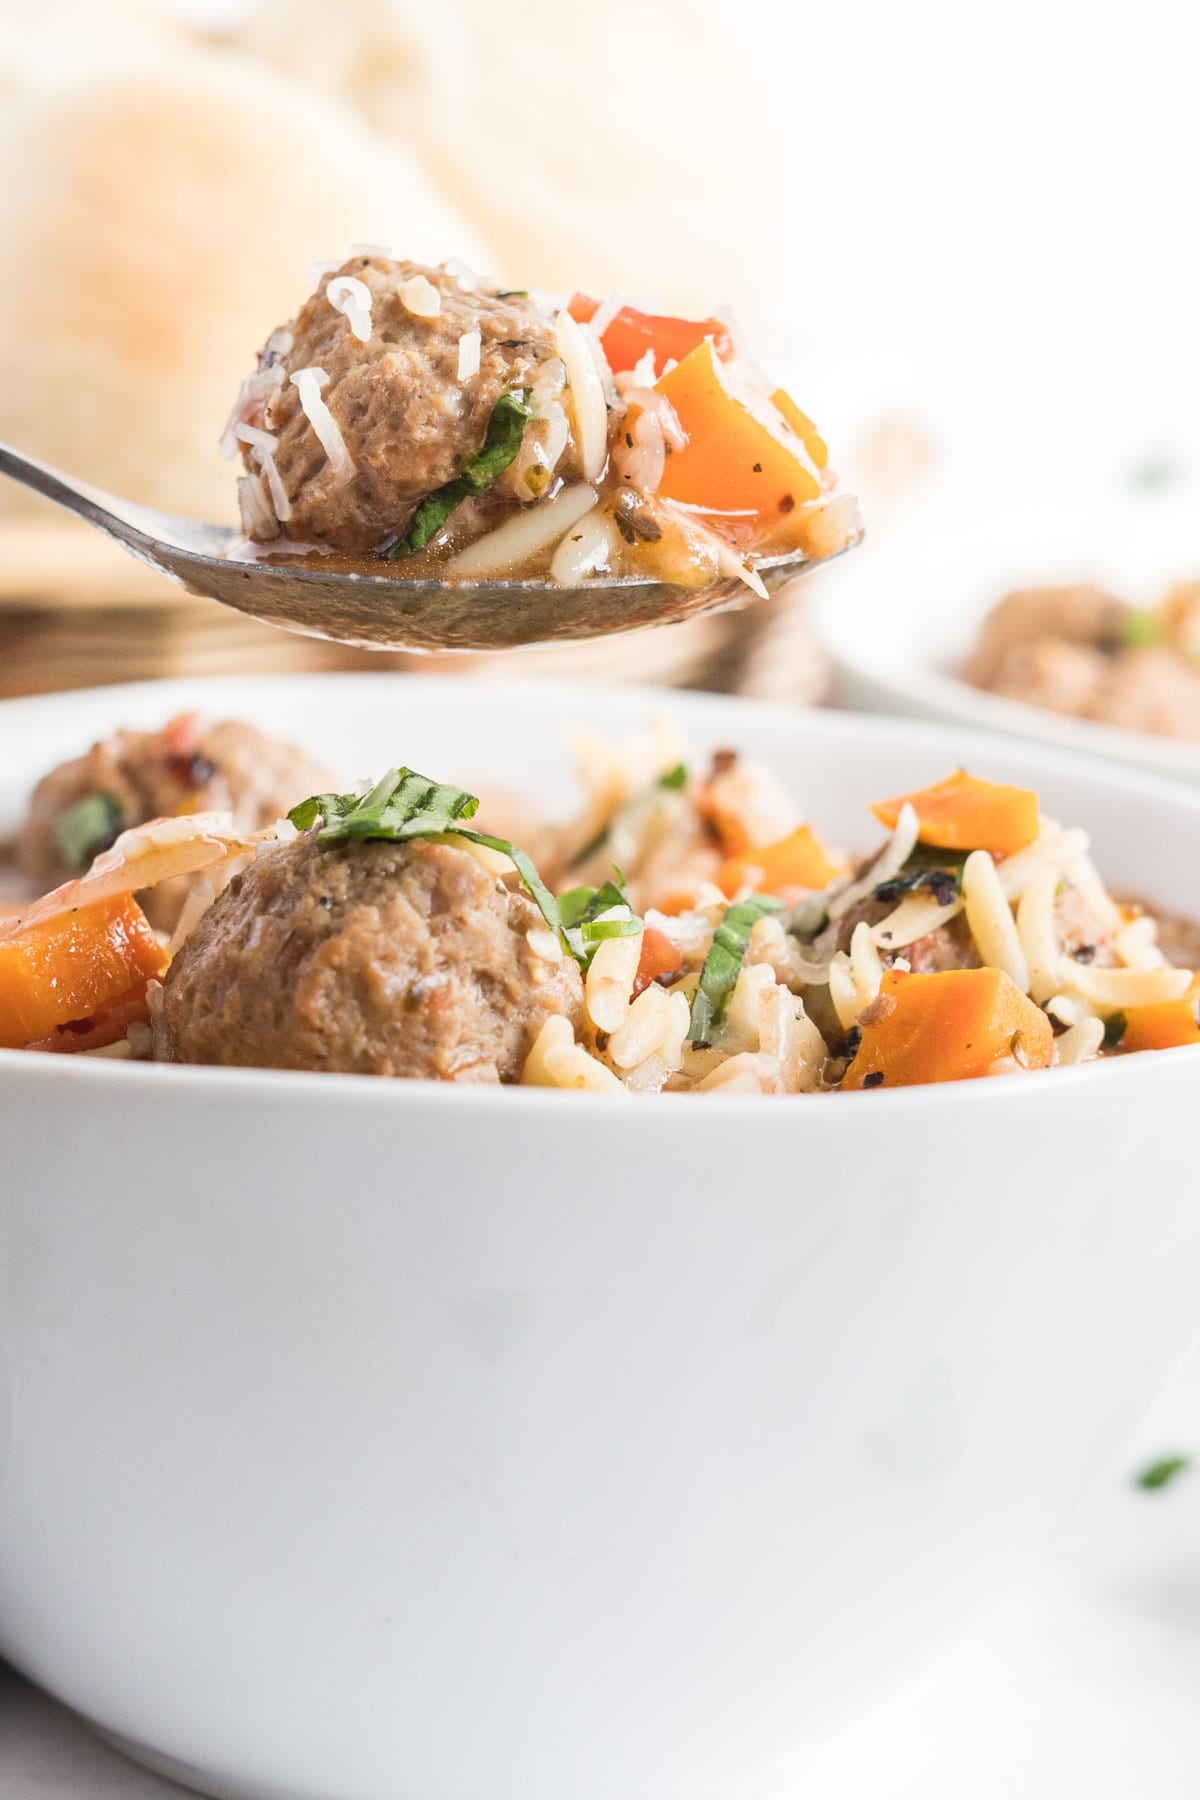 Spoonful of meatball soup with meatballs, carrots and orzo.